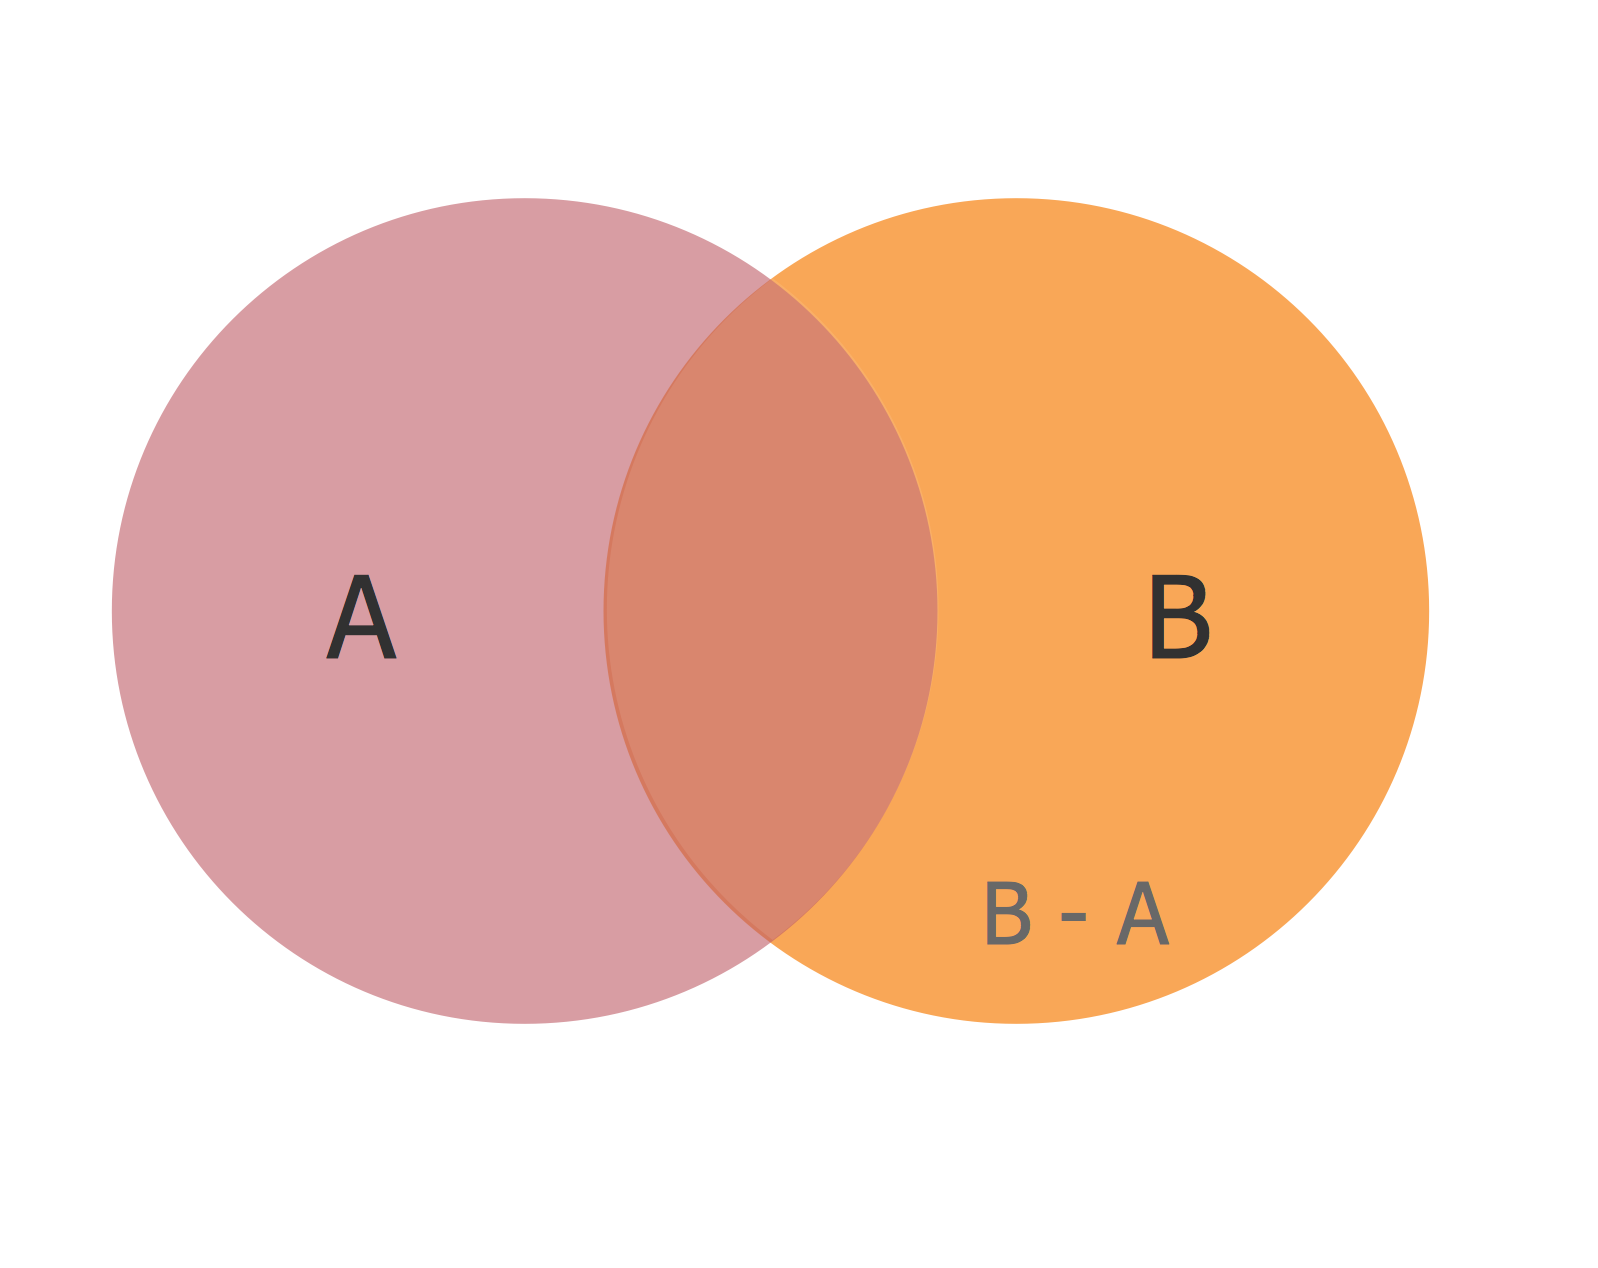 Basic circles venn diagram venn diagram example basic circles venn diagram example 1 pooptronica Images